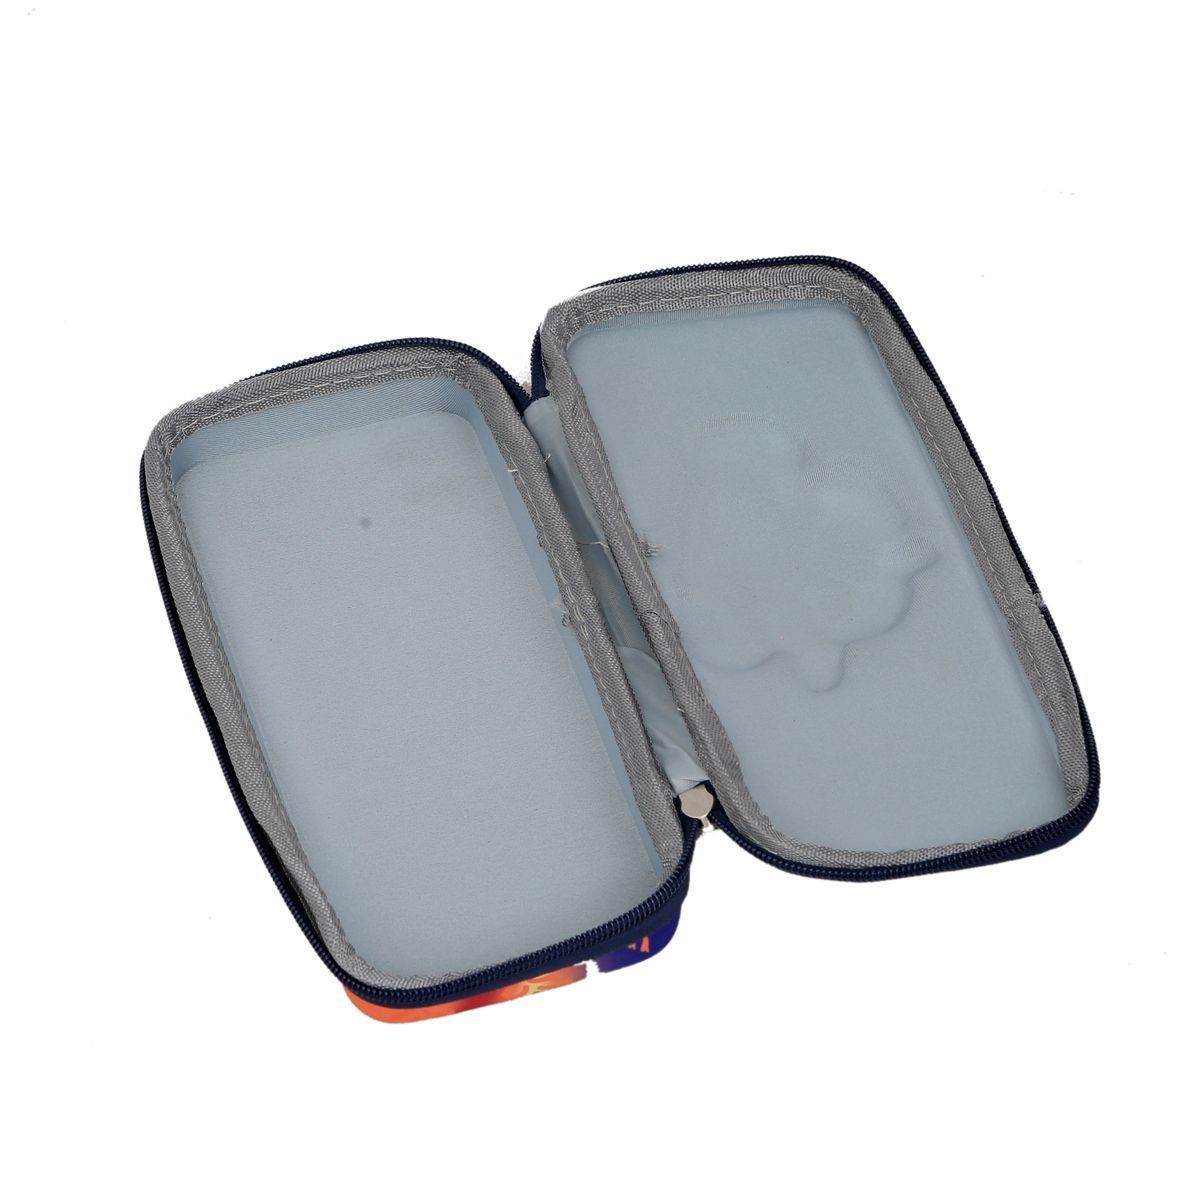 Kuber IndustriesTM Raised Figure Pencil Box Pouch Cases For School